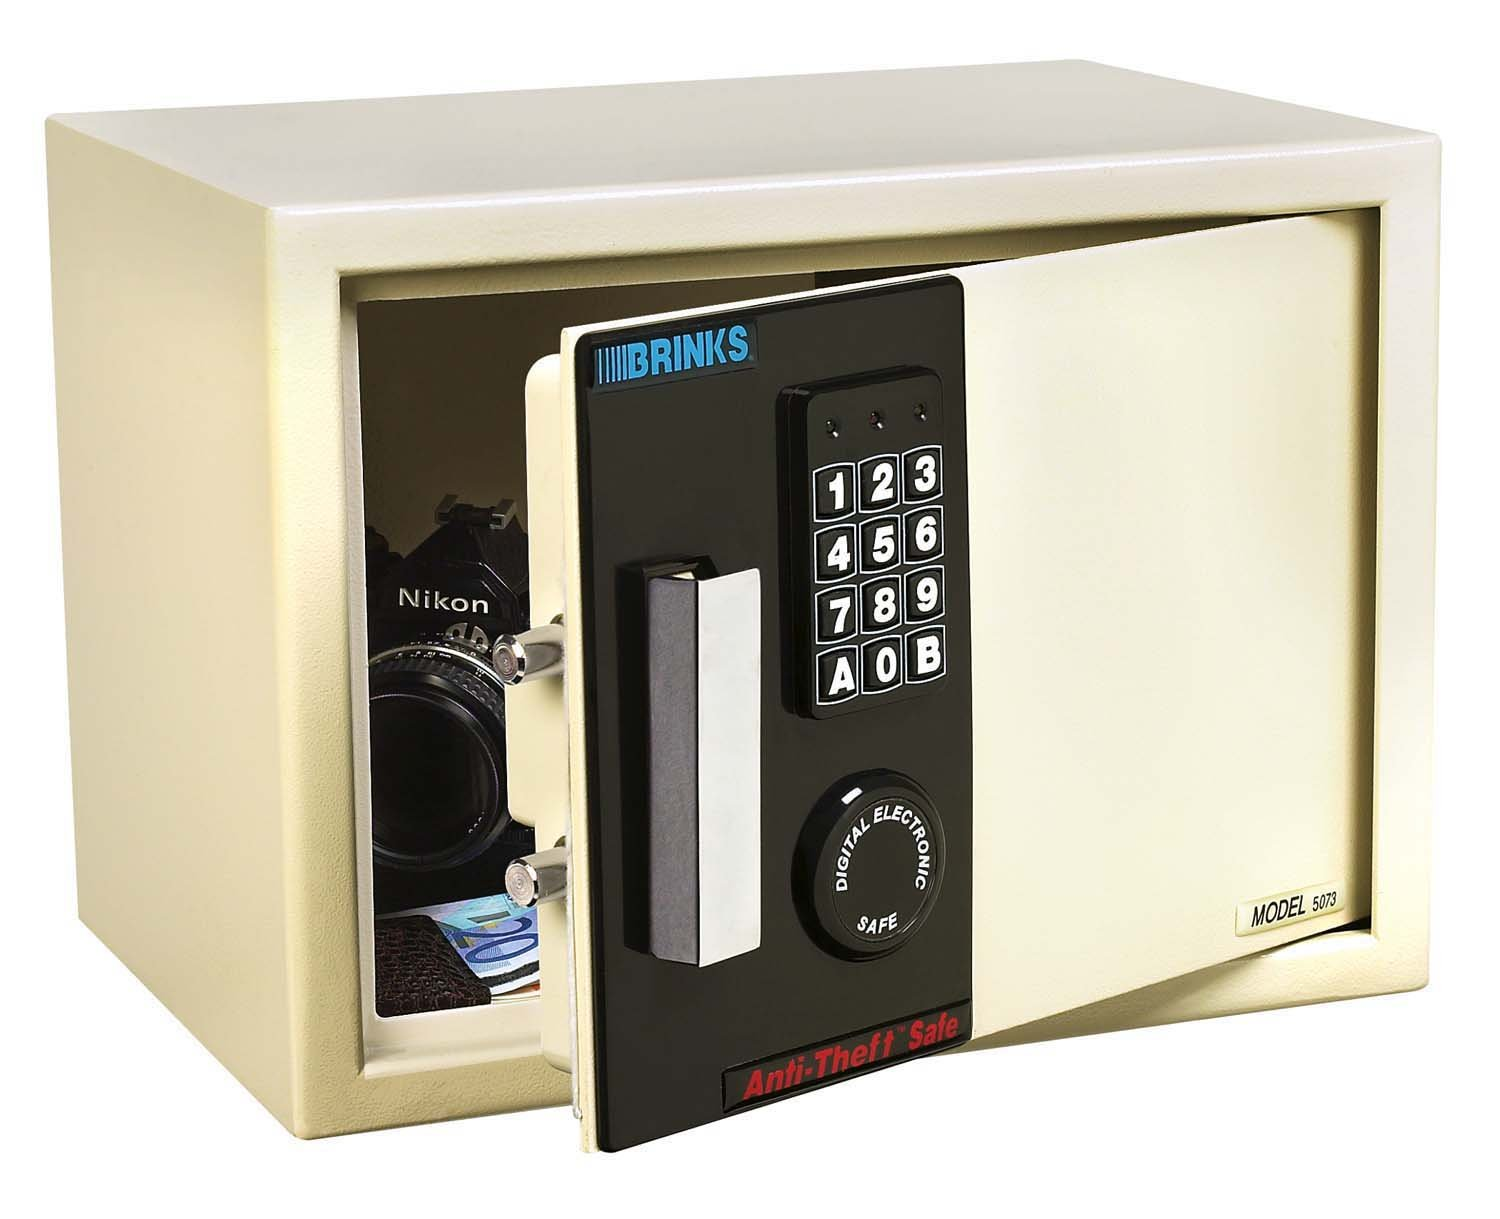 Brinks home security anti theft safe model 5074 home box for Brinks home security